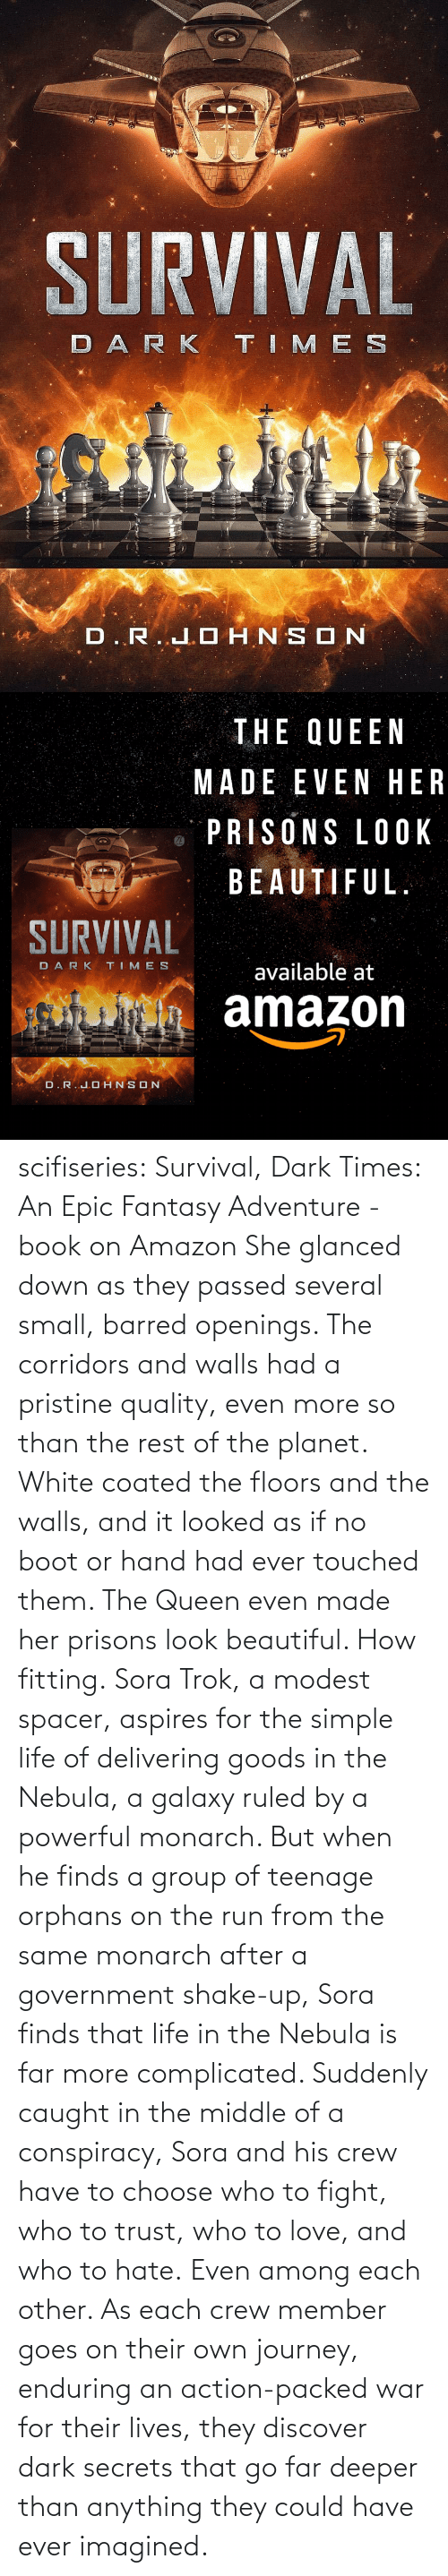 made: scifiseries: Survival, Dark Times: An Epic Fantasy Adventure - book on Amazon  She glanced down as they  passed several small, barred openings. The corridors and walls had a  pristine quality, even more so than the rest of the planet. White coated  the floors and the walls, and it looked as if no boot or hand had ever  touched them.  The Queen even made her prisons look beautiful.  How fitting. Sora  Trok, a modest spacer, aspires for the simple life of delivering goods  in the Nebula, a galaxy ruled by a powerful monarch. But when he finds a  group of teenage orphans on the run from the same monarch after a  government shake-up, Sora finds that life in the Nebula is far more complicated.  Suddenly  caught in the middle of a conspiracy, Sora and his crew have to choose  who to fight, who to trust, who to love, and who to hate. Even among each other.  As  each crew member goes on their own journey, enduring an action-packed  war for their lives, they discover dark secrets that go far deeper than  anything they could have ever imagined.